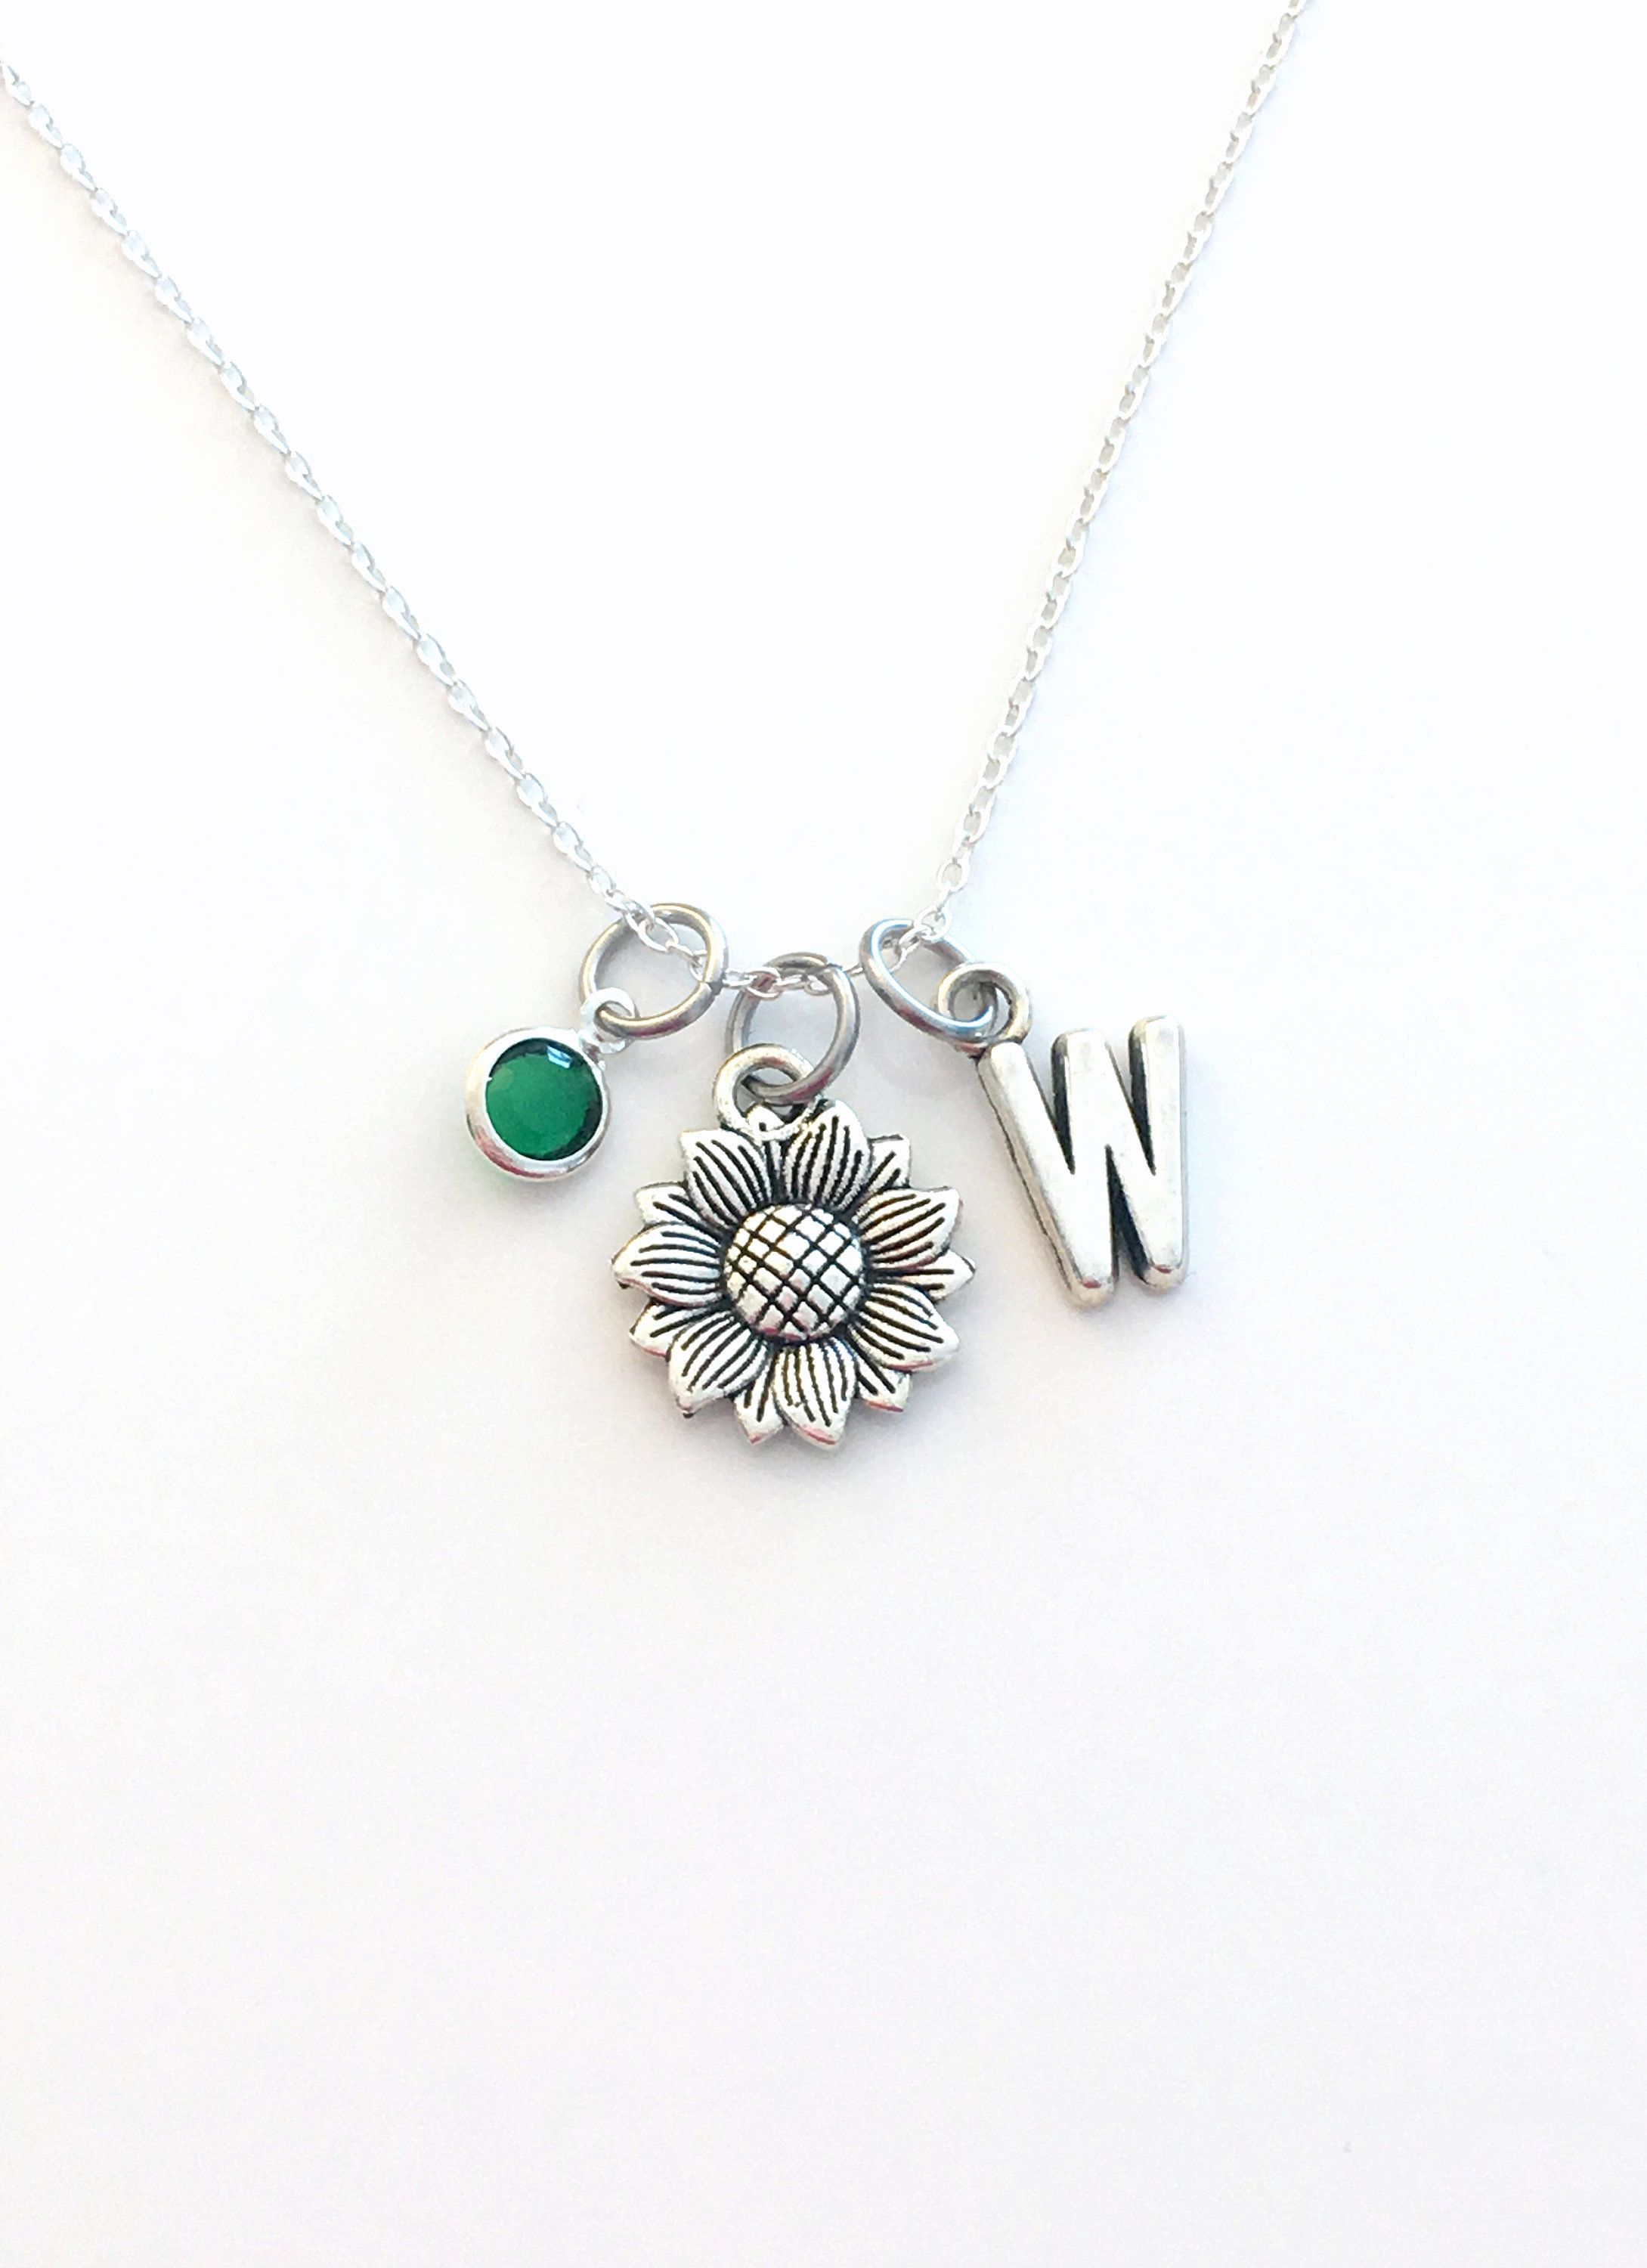 Sunflower embroidered onto a silver floral pendant